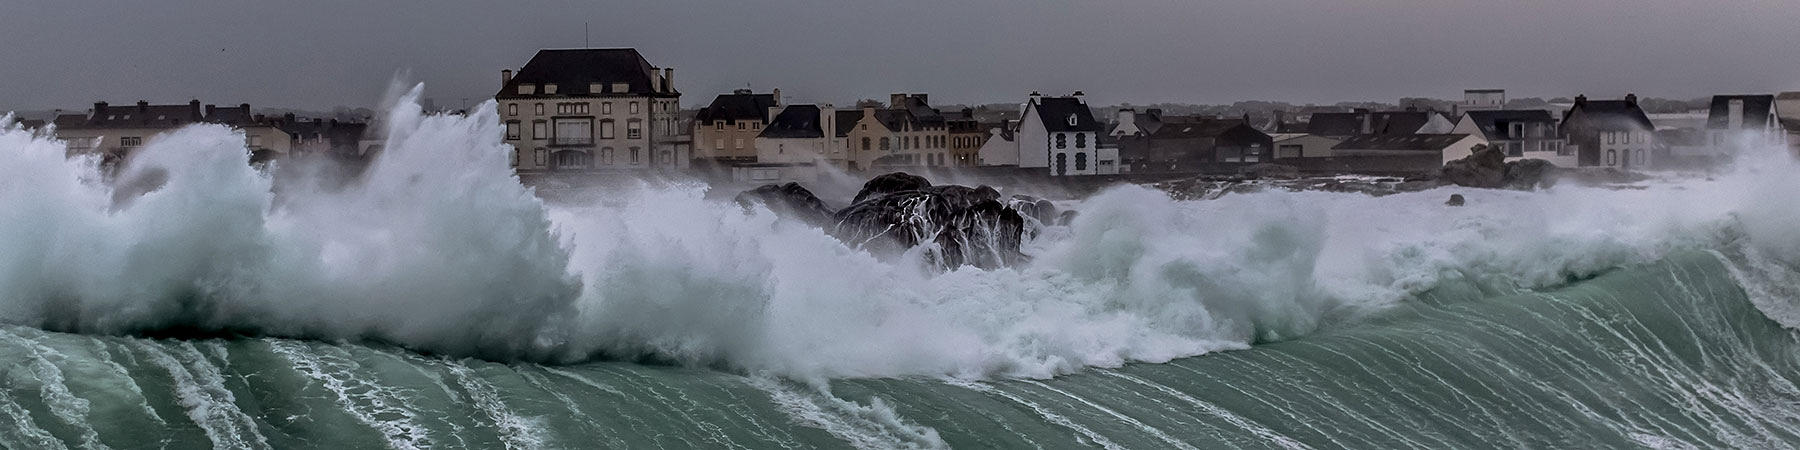 Storms - Photo Plisson